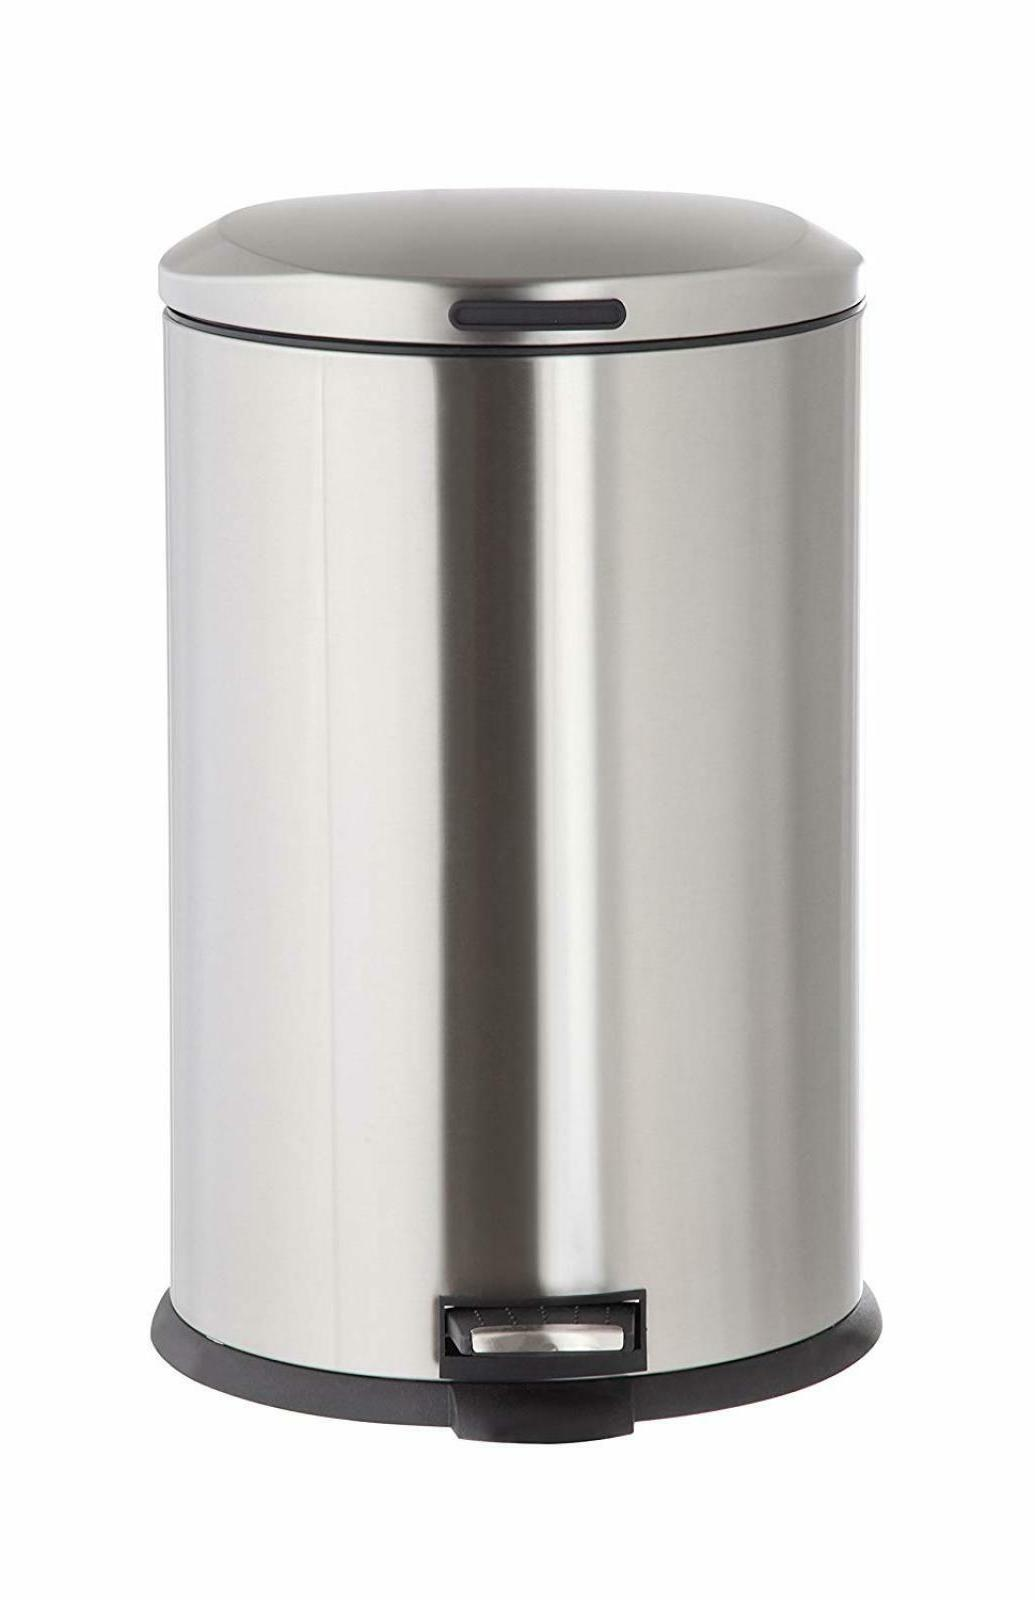 Kitchen Trash Can with Lid 13 Gallon Stainless